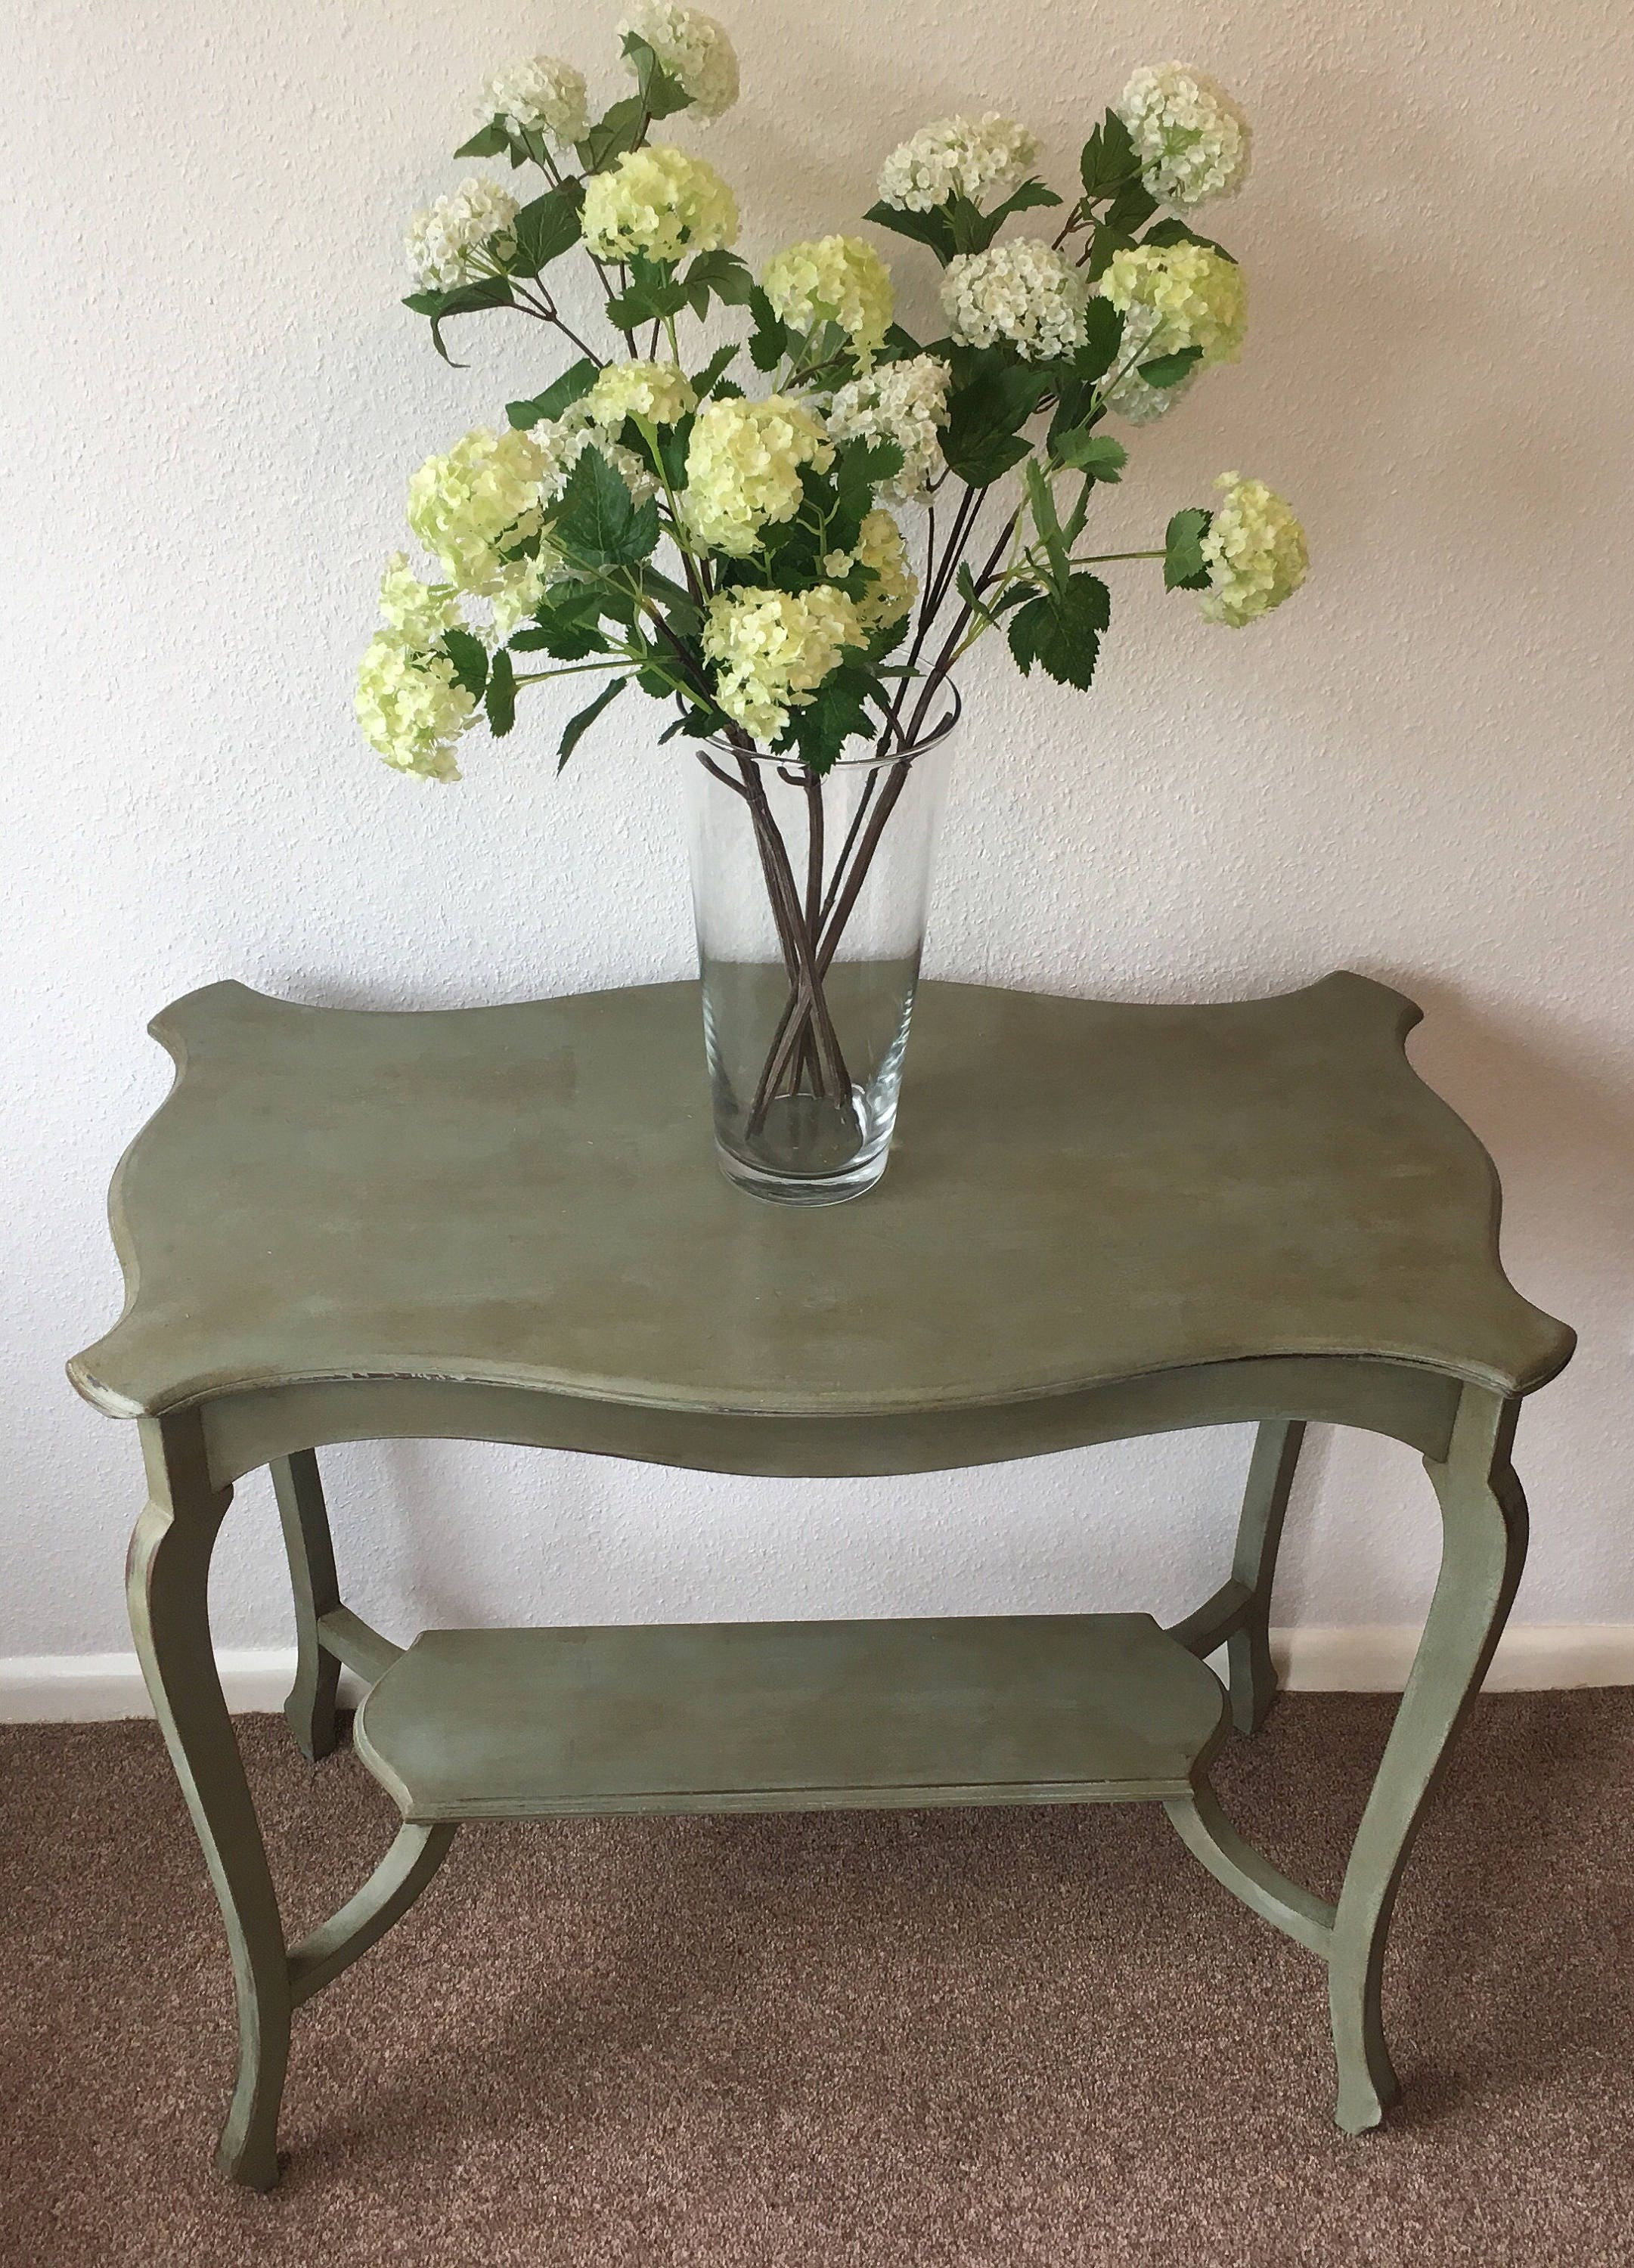 Edwardian occasionalhallway table FREE DELIVERY